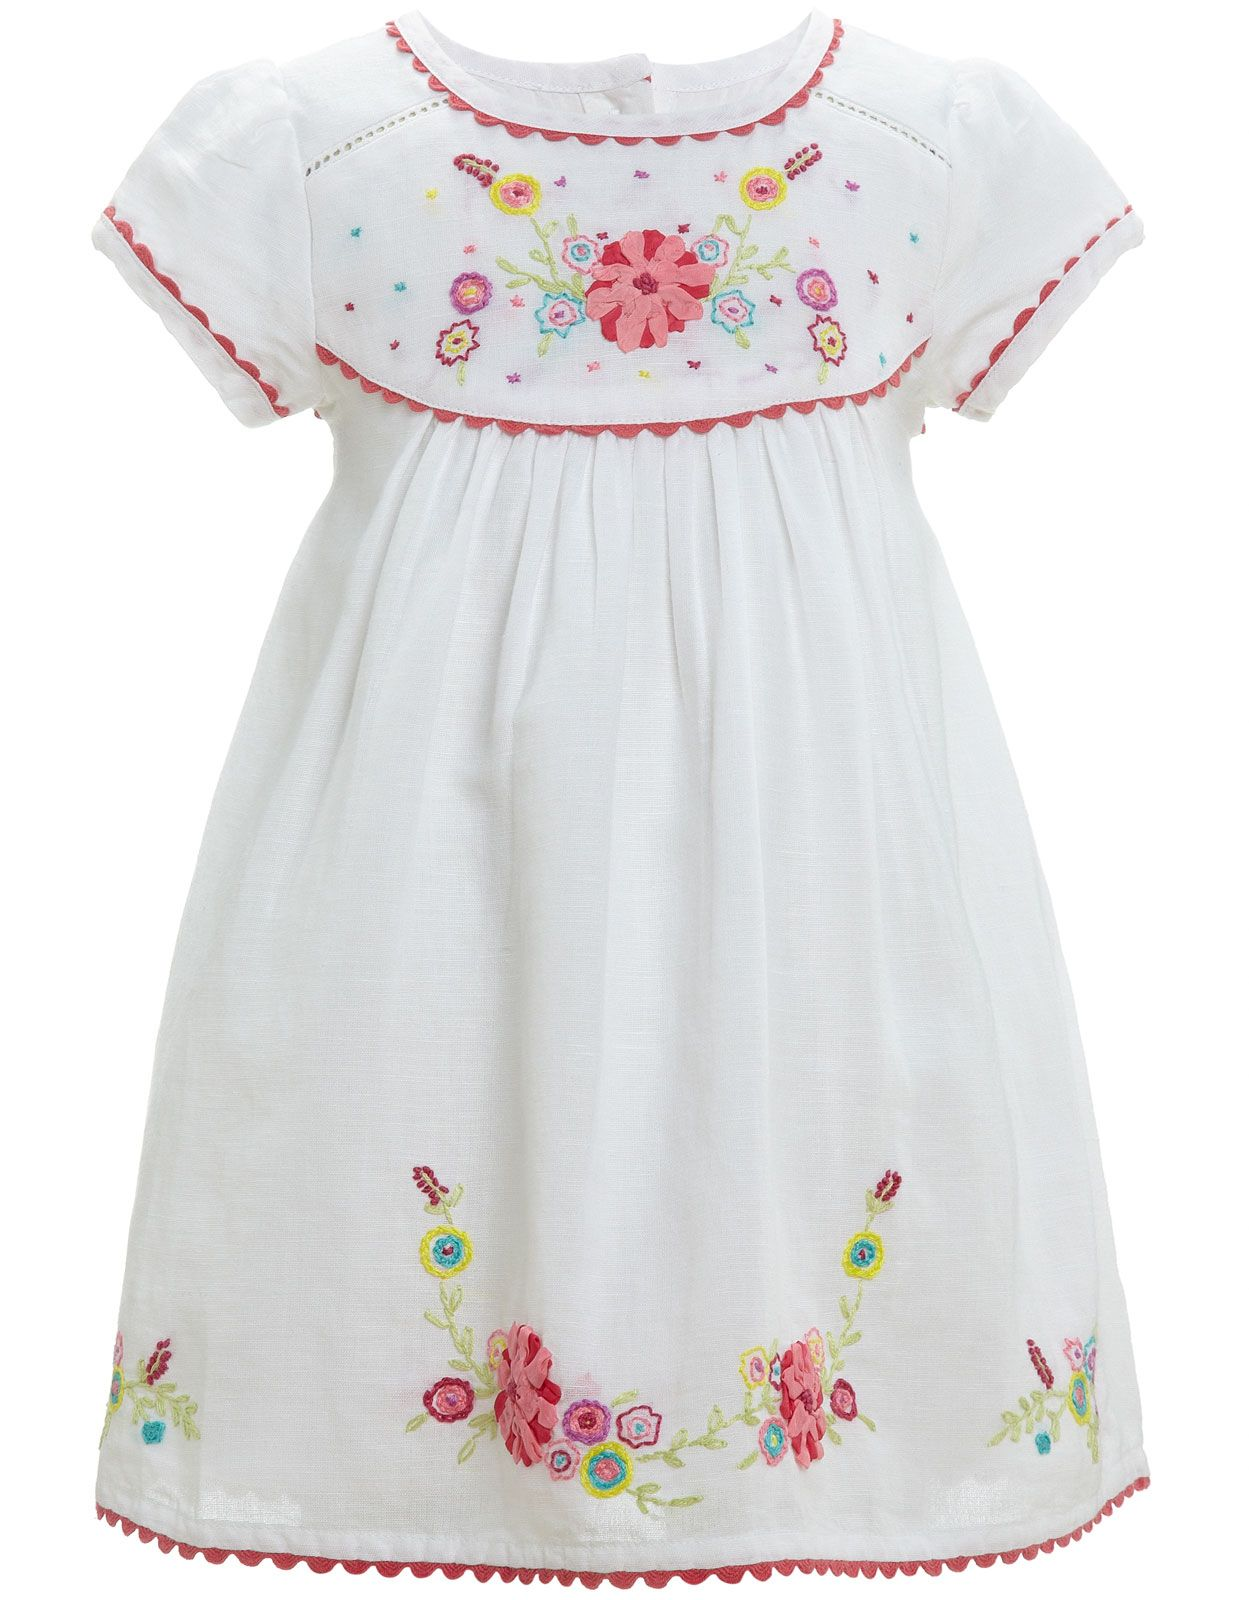 7a0fa93eee6f Embroidered Dress from my favorite store in UK Monsoon | Smocking ...